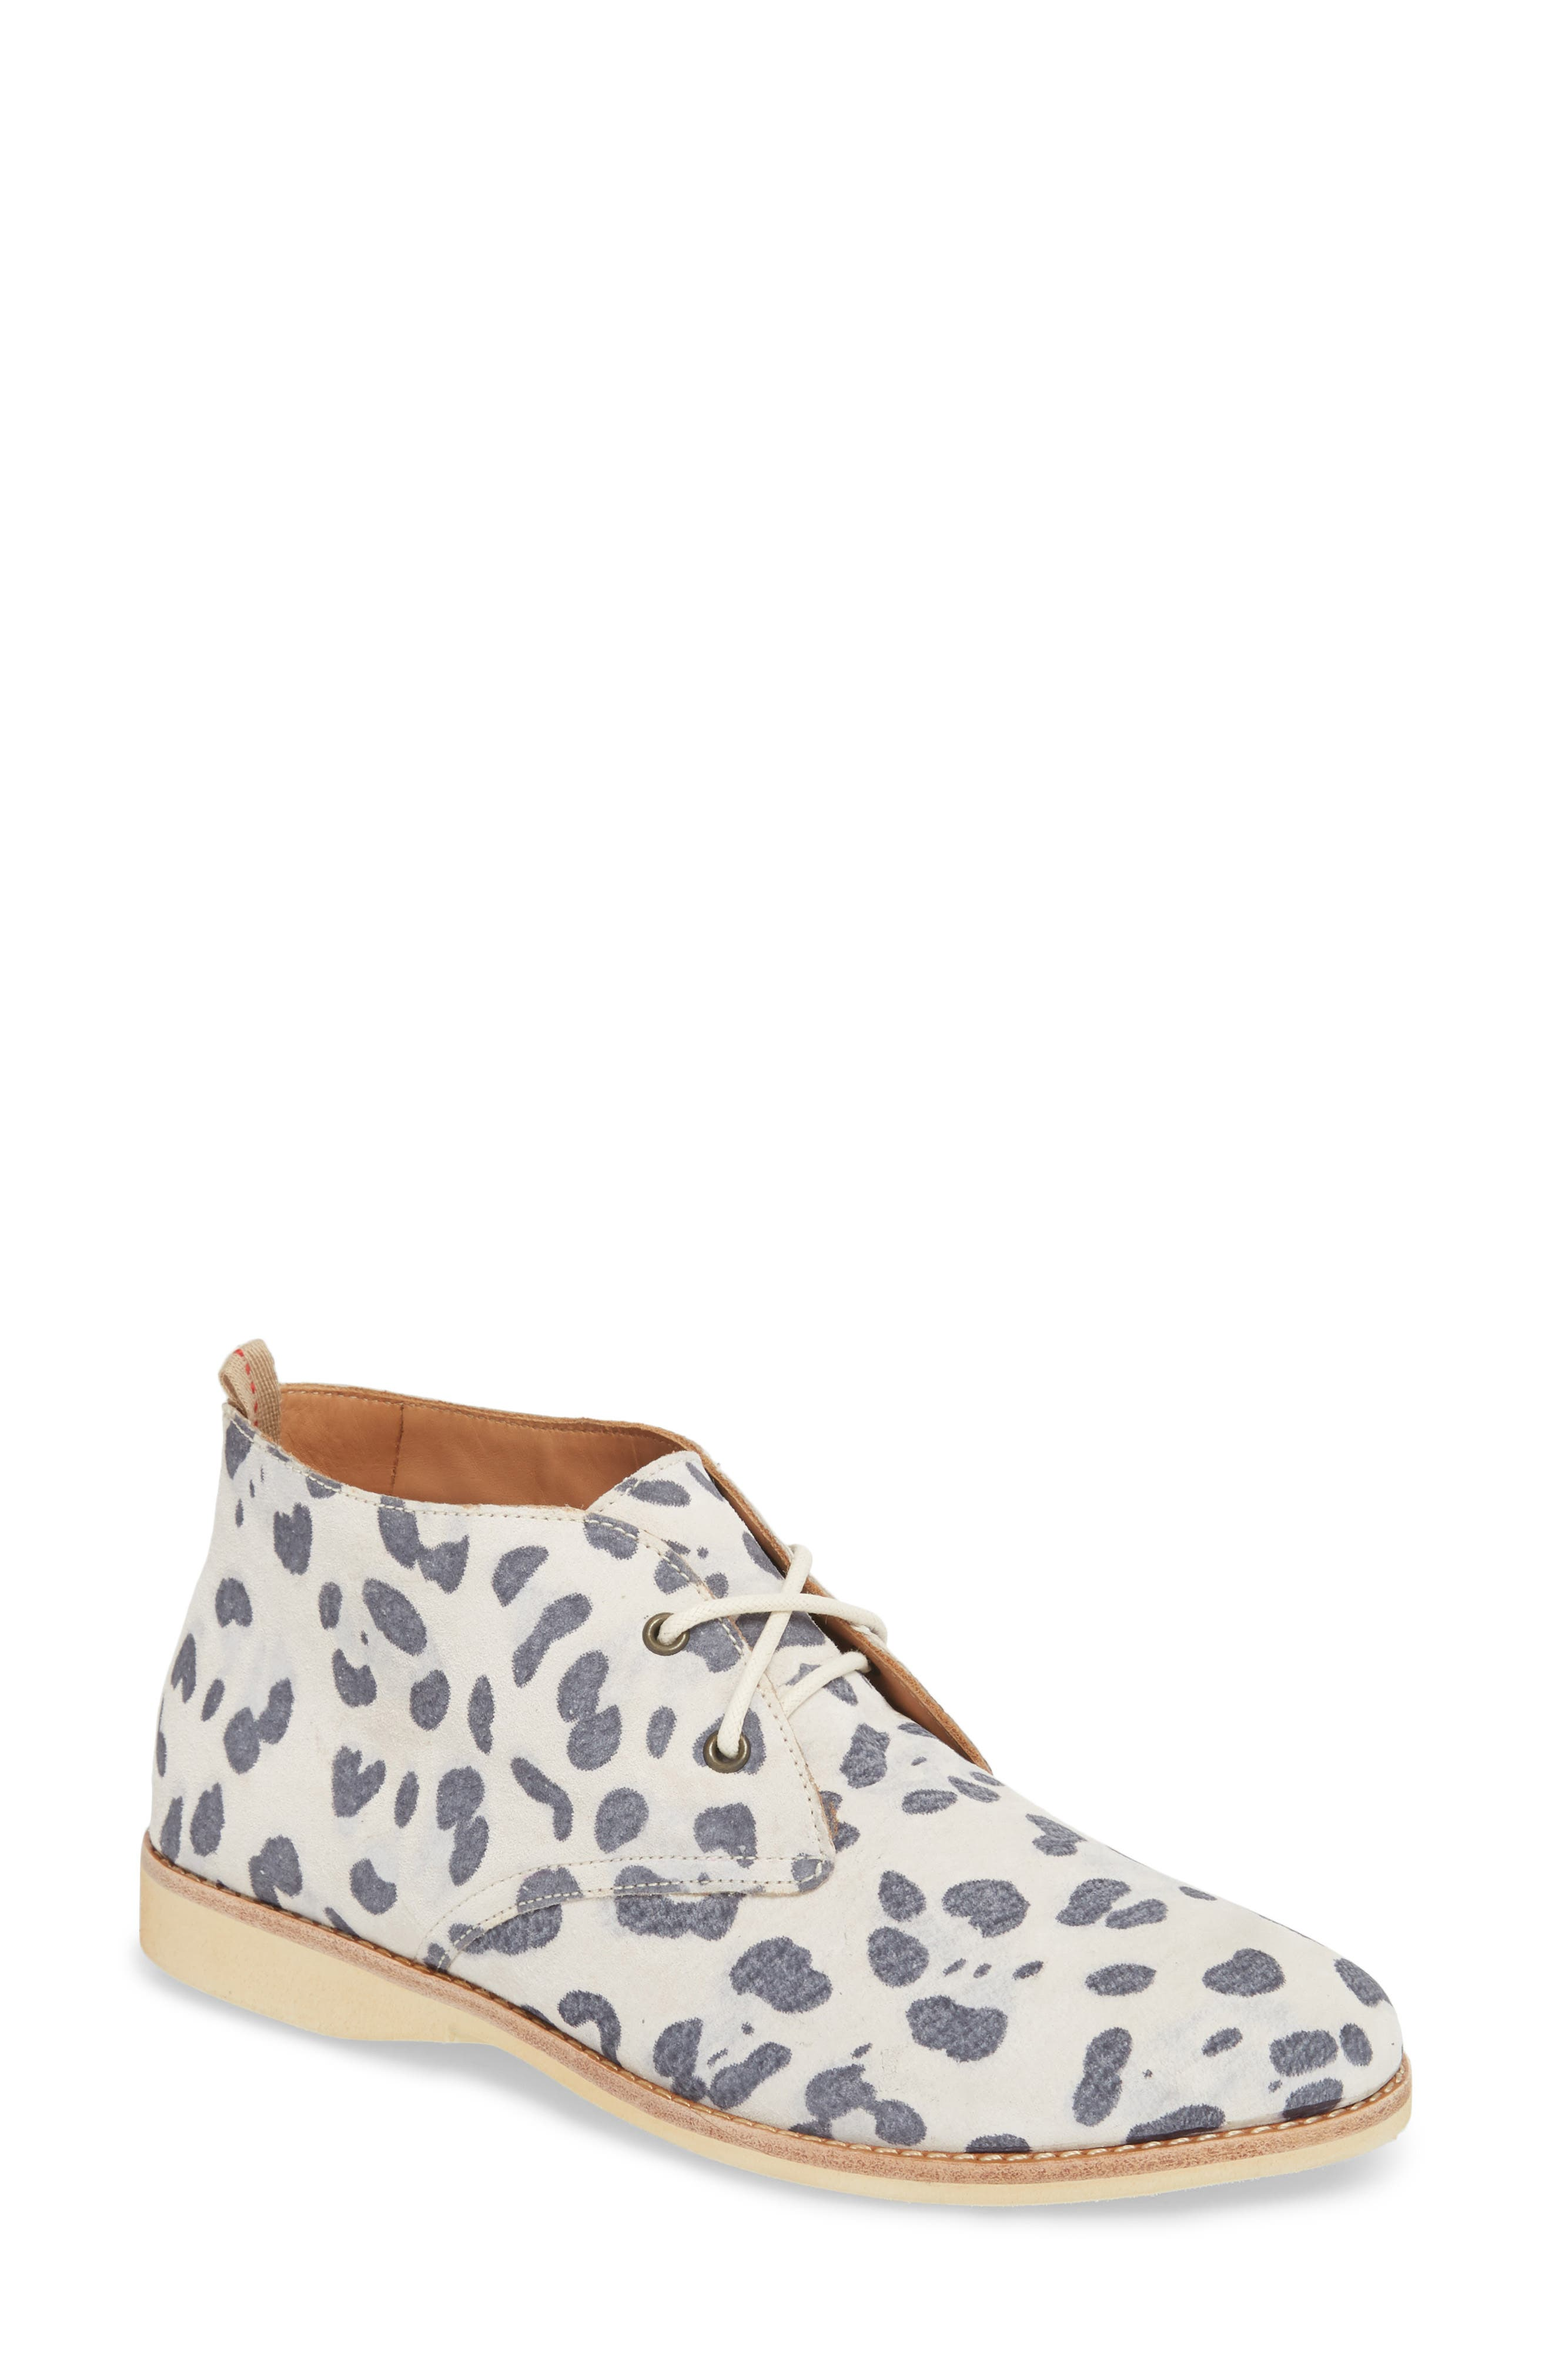 Chukka Bootie,                             Main thumbnail 1, color,                             GREY LEOPARD SUEDE